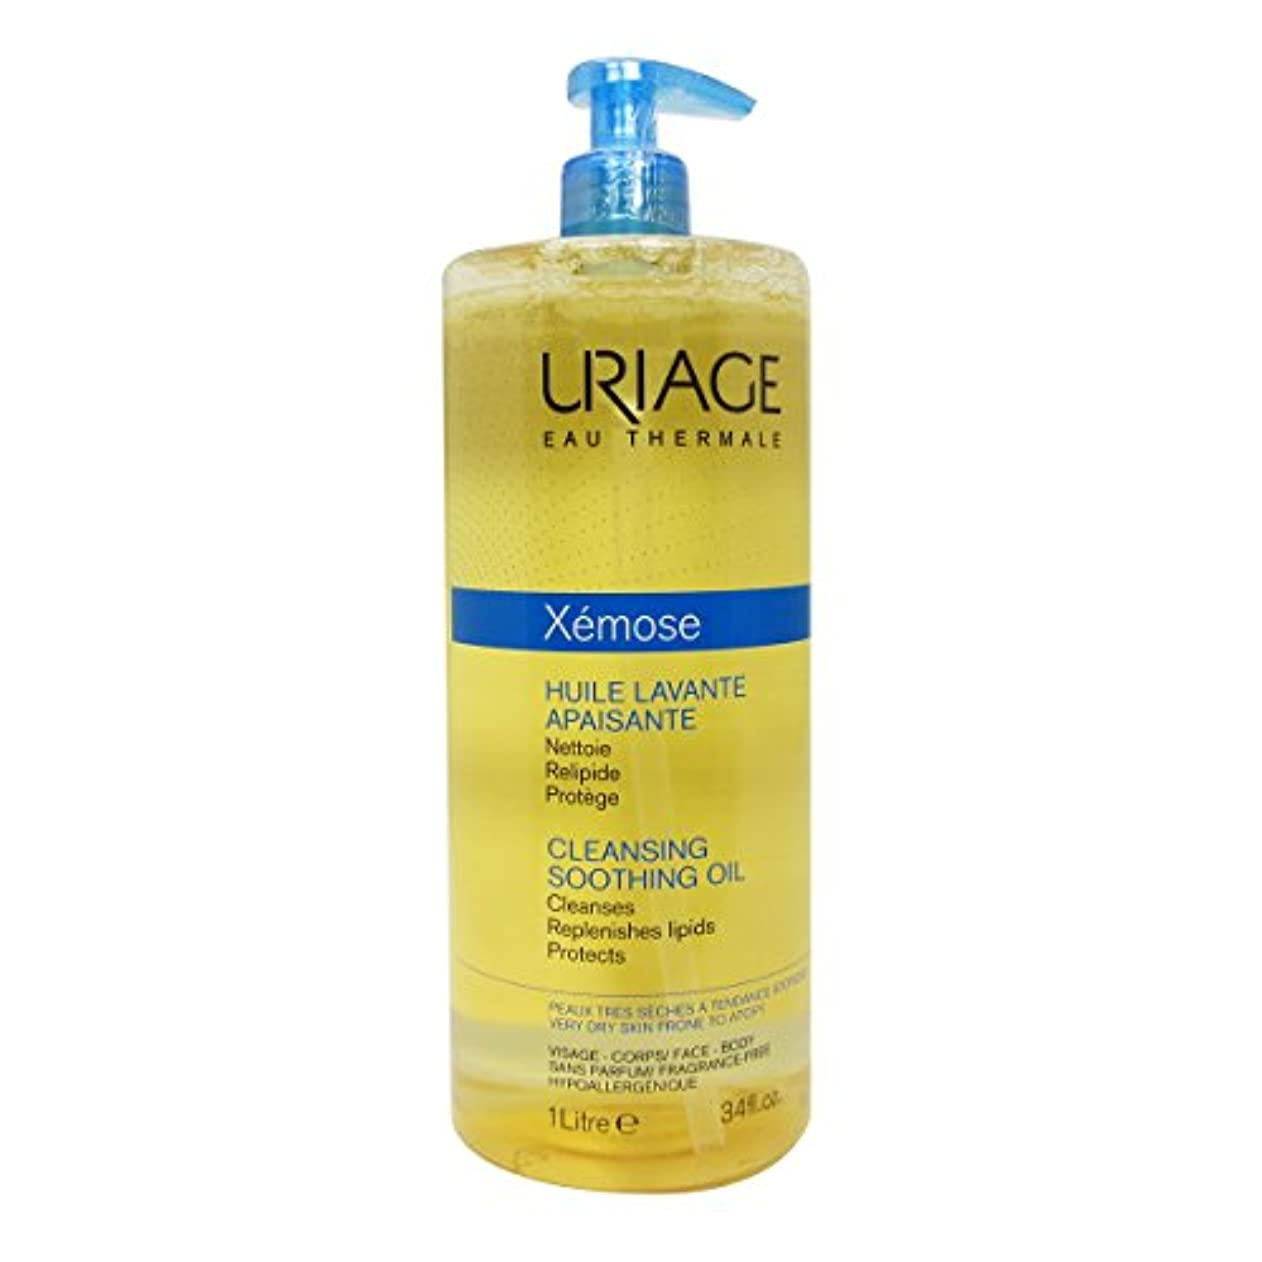 Uriage Xemose Smoothing Cleansing Oil 1000ml [並行輸入品]